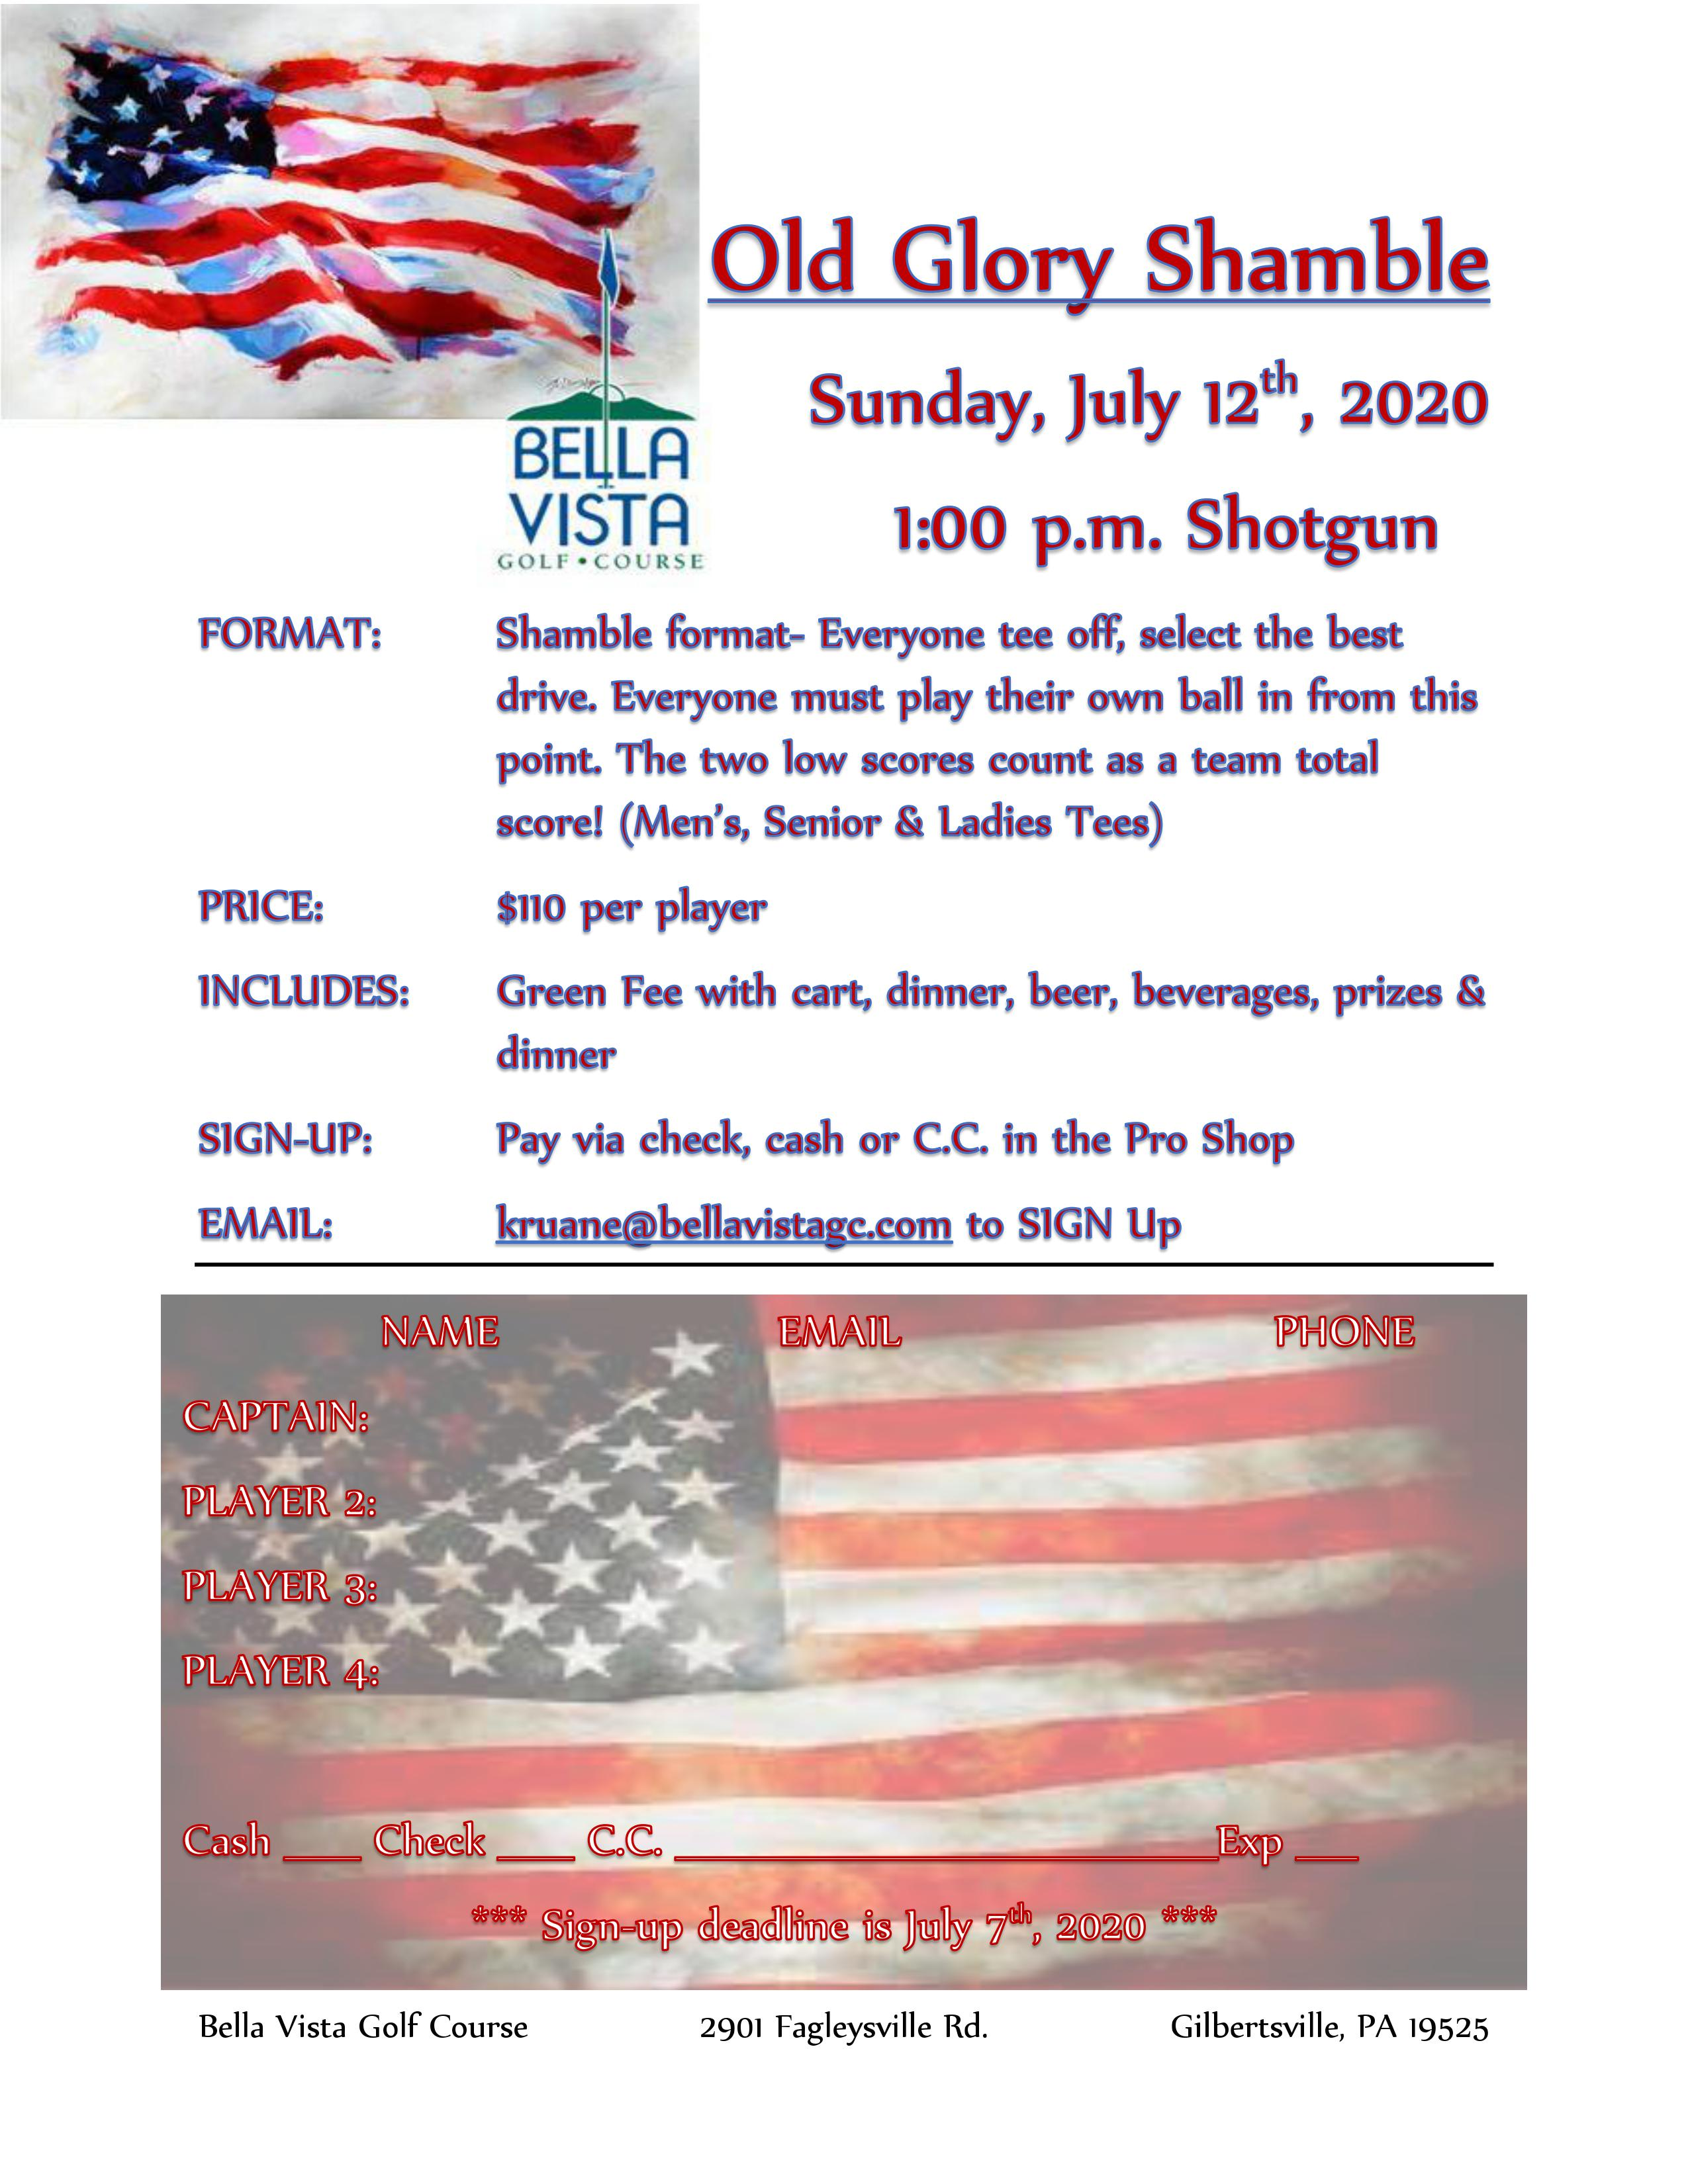 Old Glory Shamble